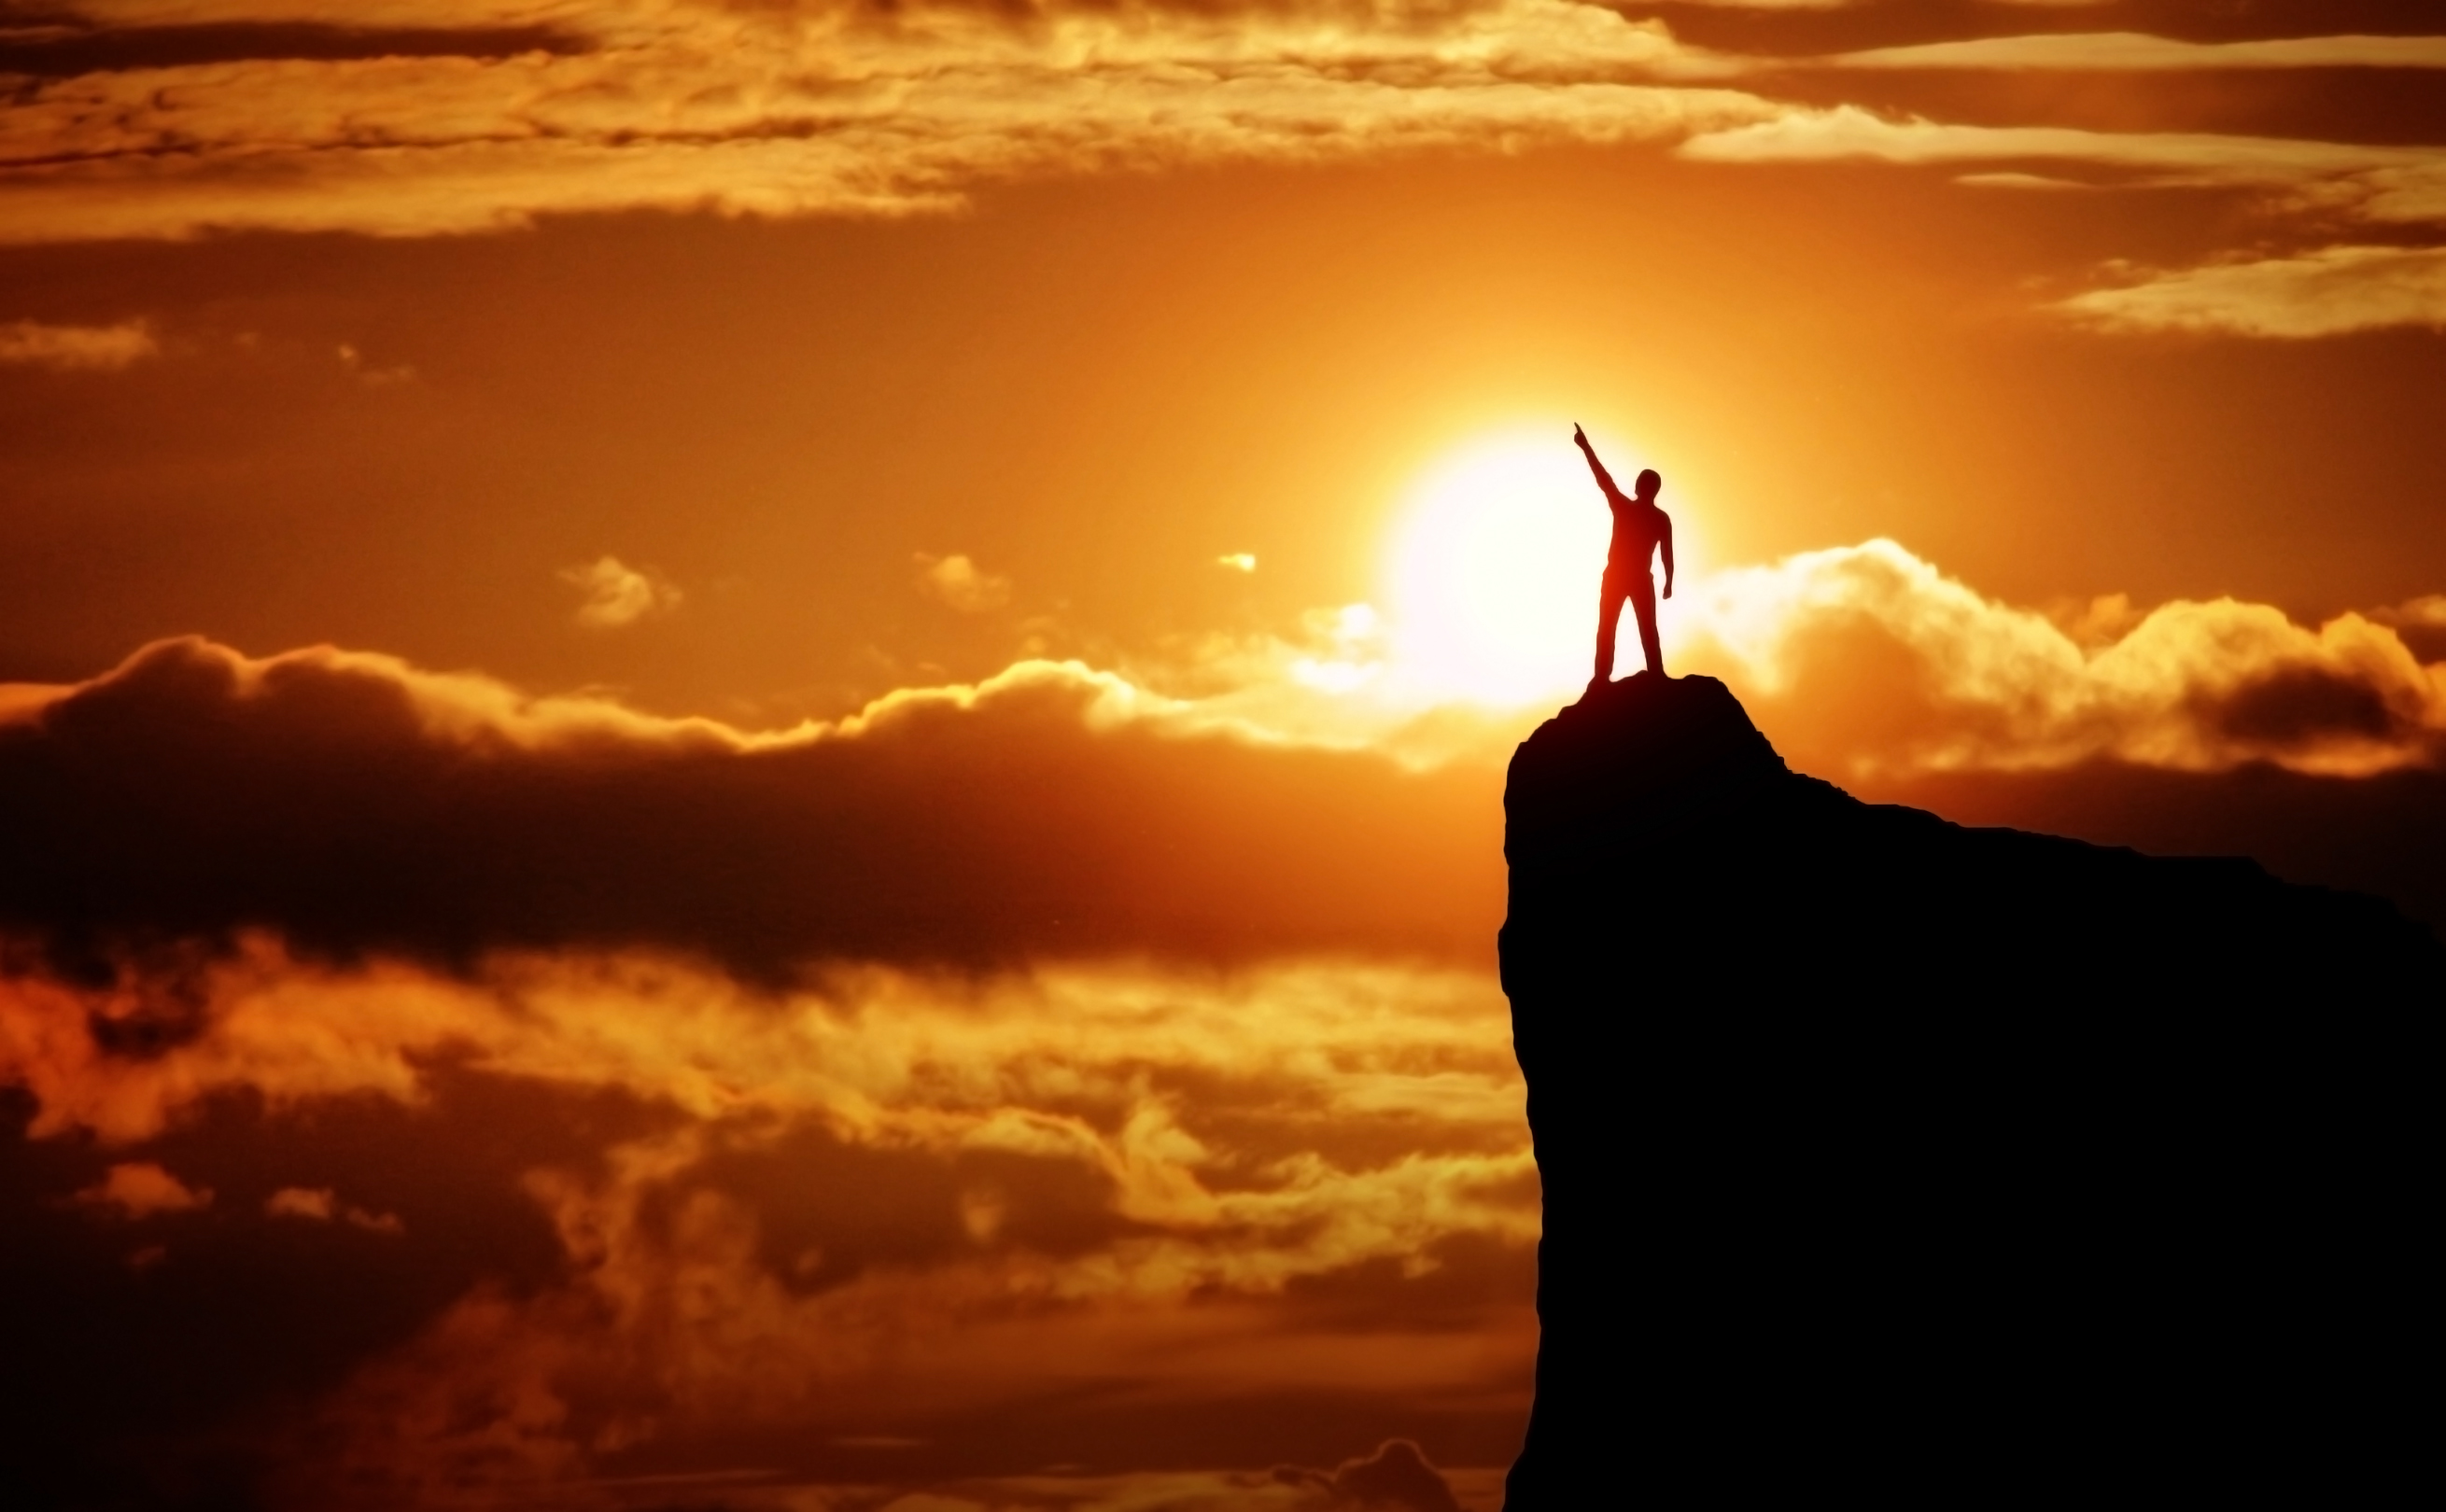 Man on the Top of the Mountain at Sunrise, Power, Person, Reaching, Rock, HQ Photo